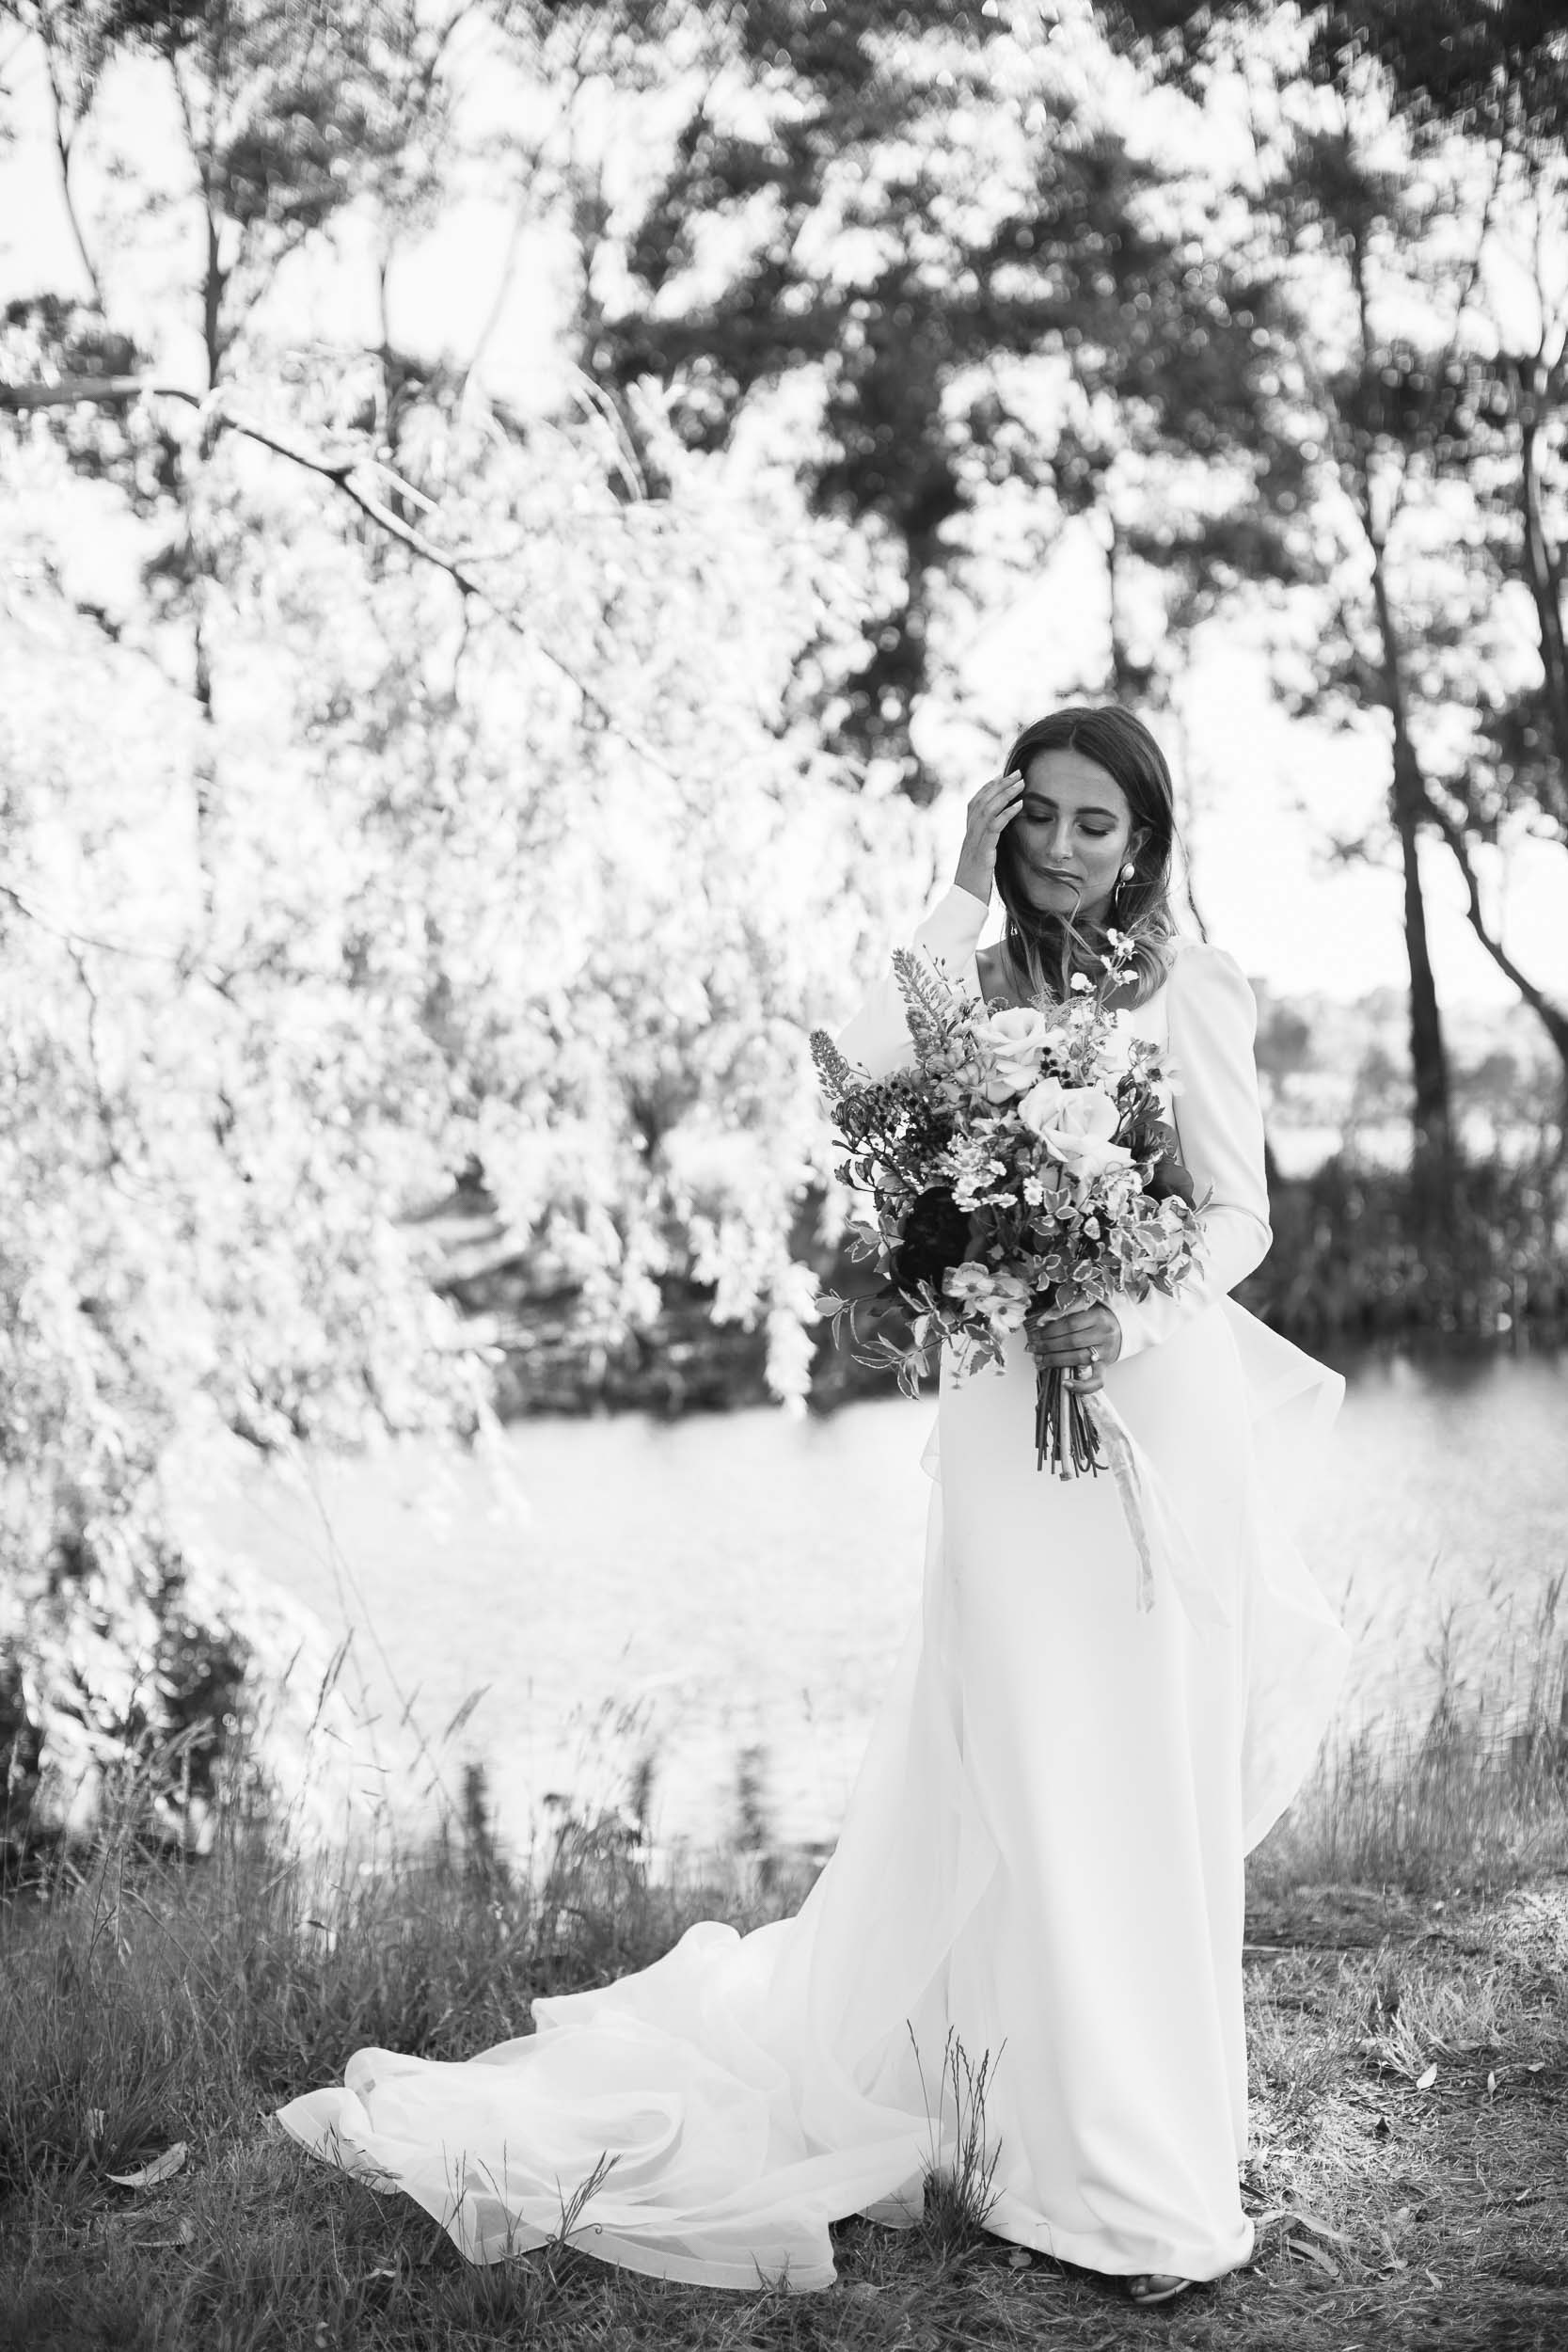 Kas-Richards-Wedding-Ediorial-Photographer-Mornington-Peninsula-Winery-Wedding-Karen-Willis-Holmes-Gown-Pop-up-with-Style-Planners-6.jpg